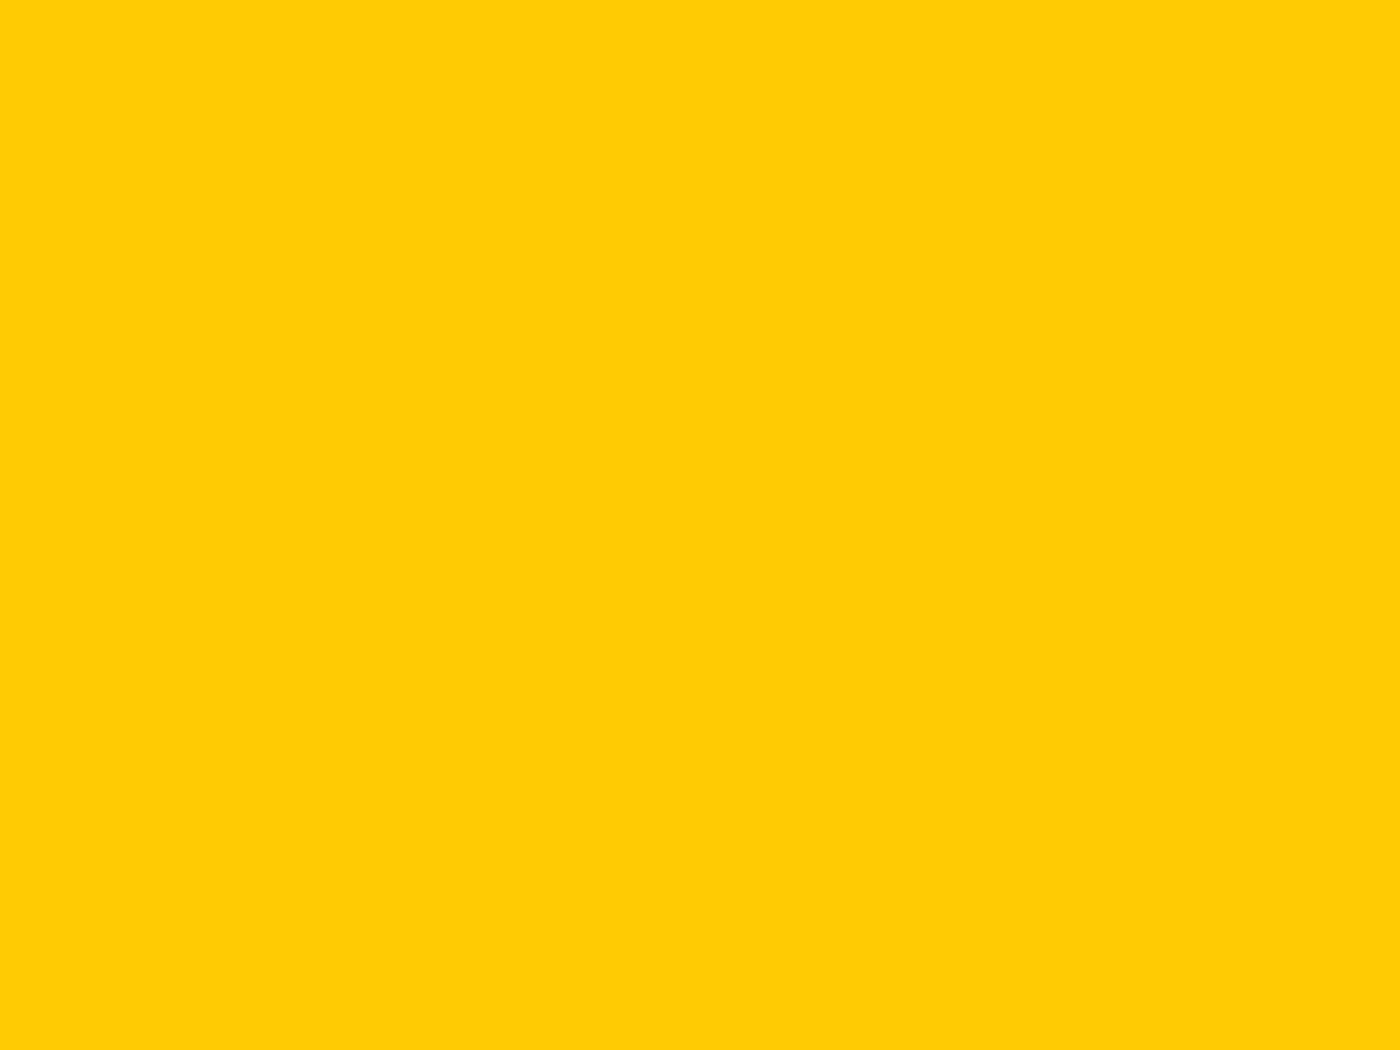 1400x1050 Tangerine Yellow Solid Color Background